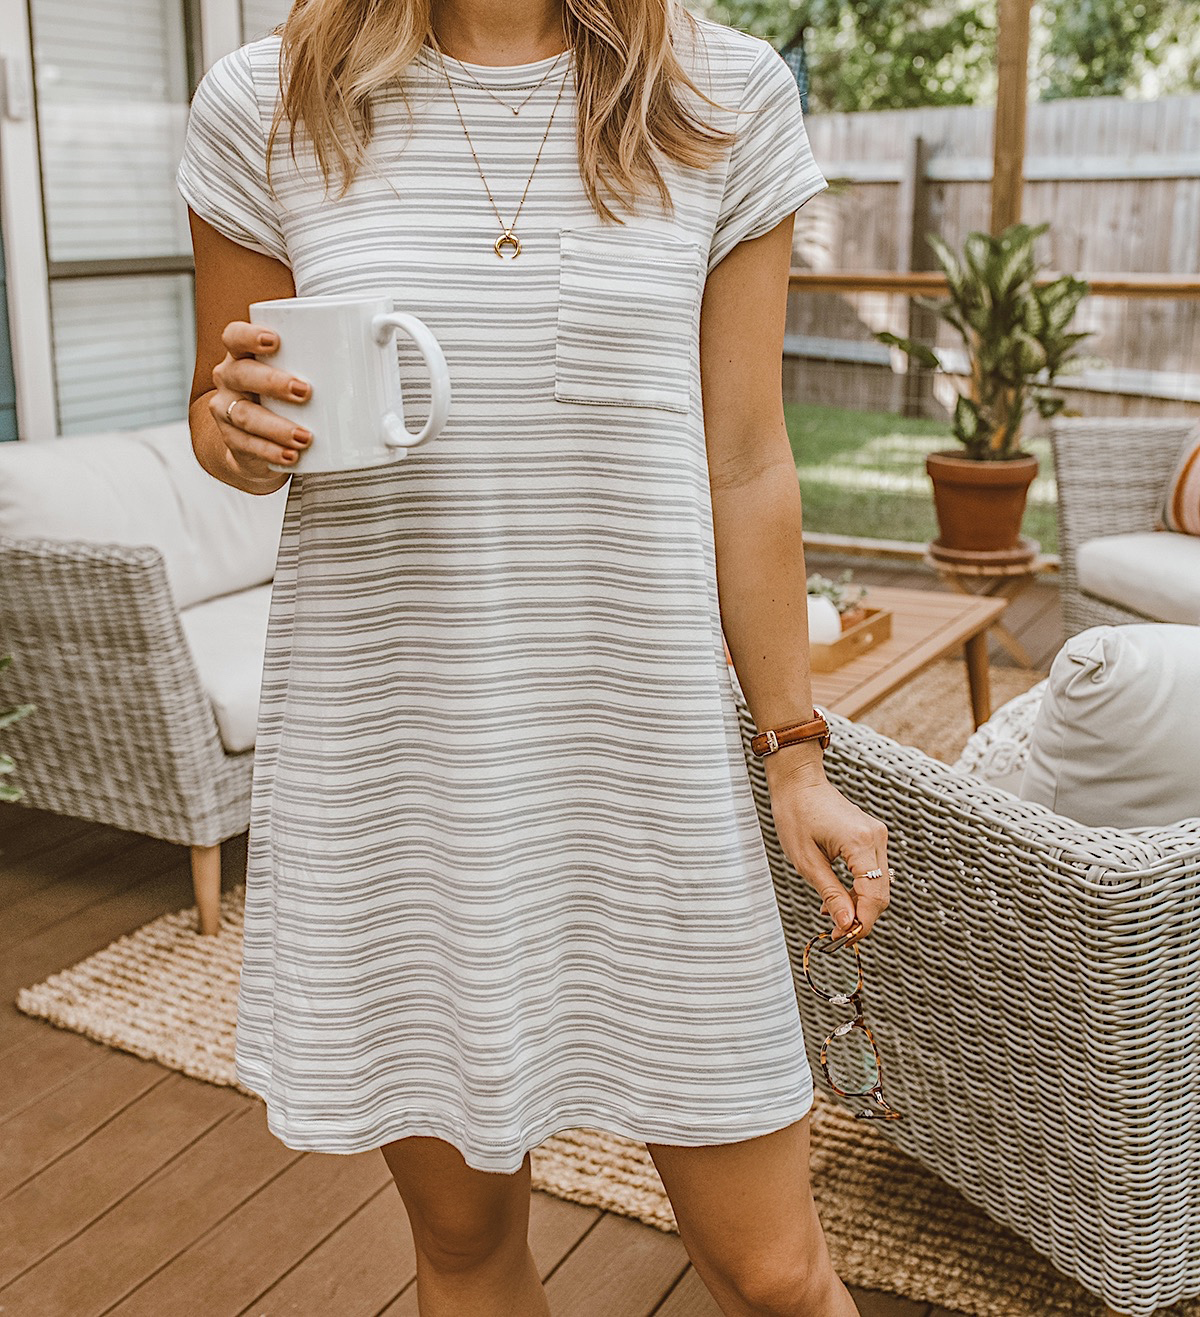 livvyland blog olivia watson lou and grey signaturesoft pocket tee striped dress cozy lounge wear 11 - My Completely satisfied Place